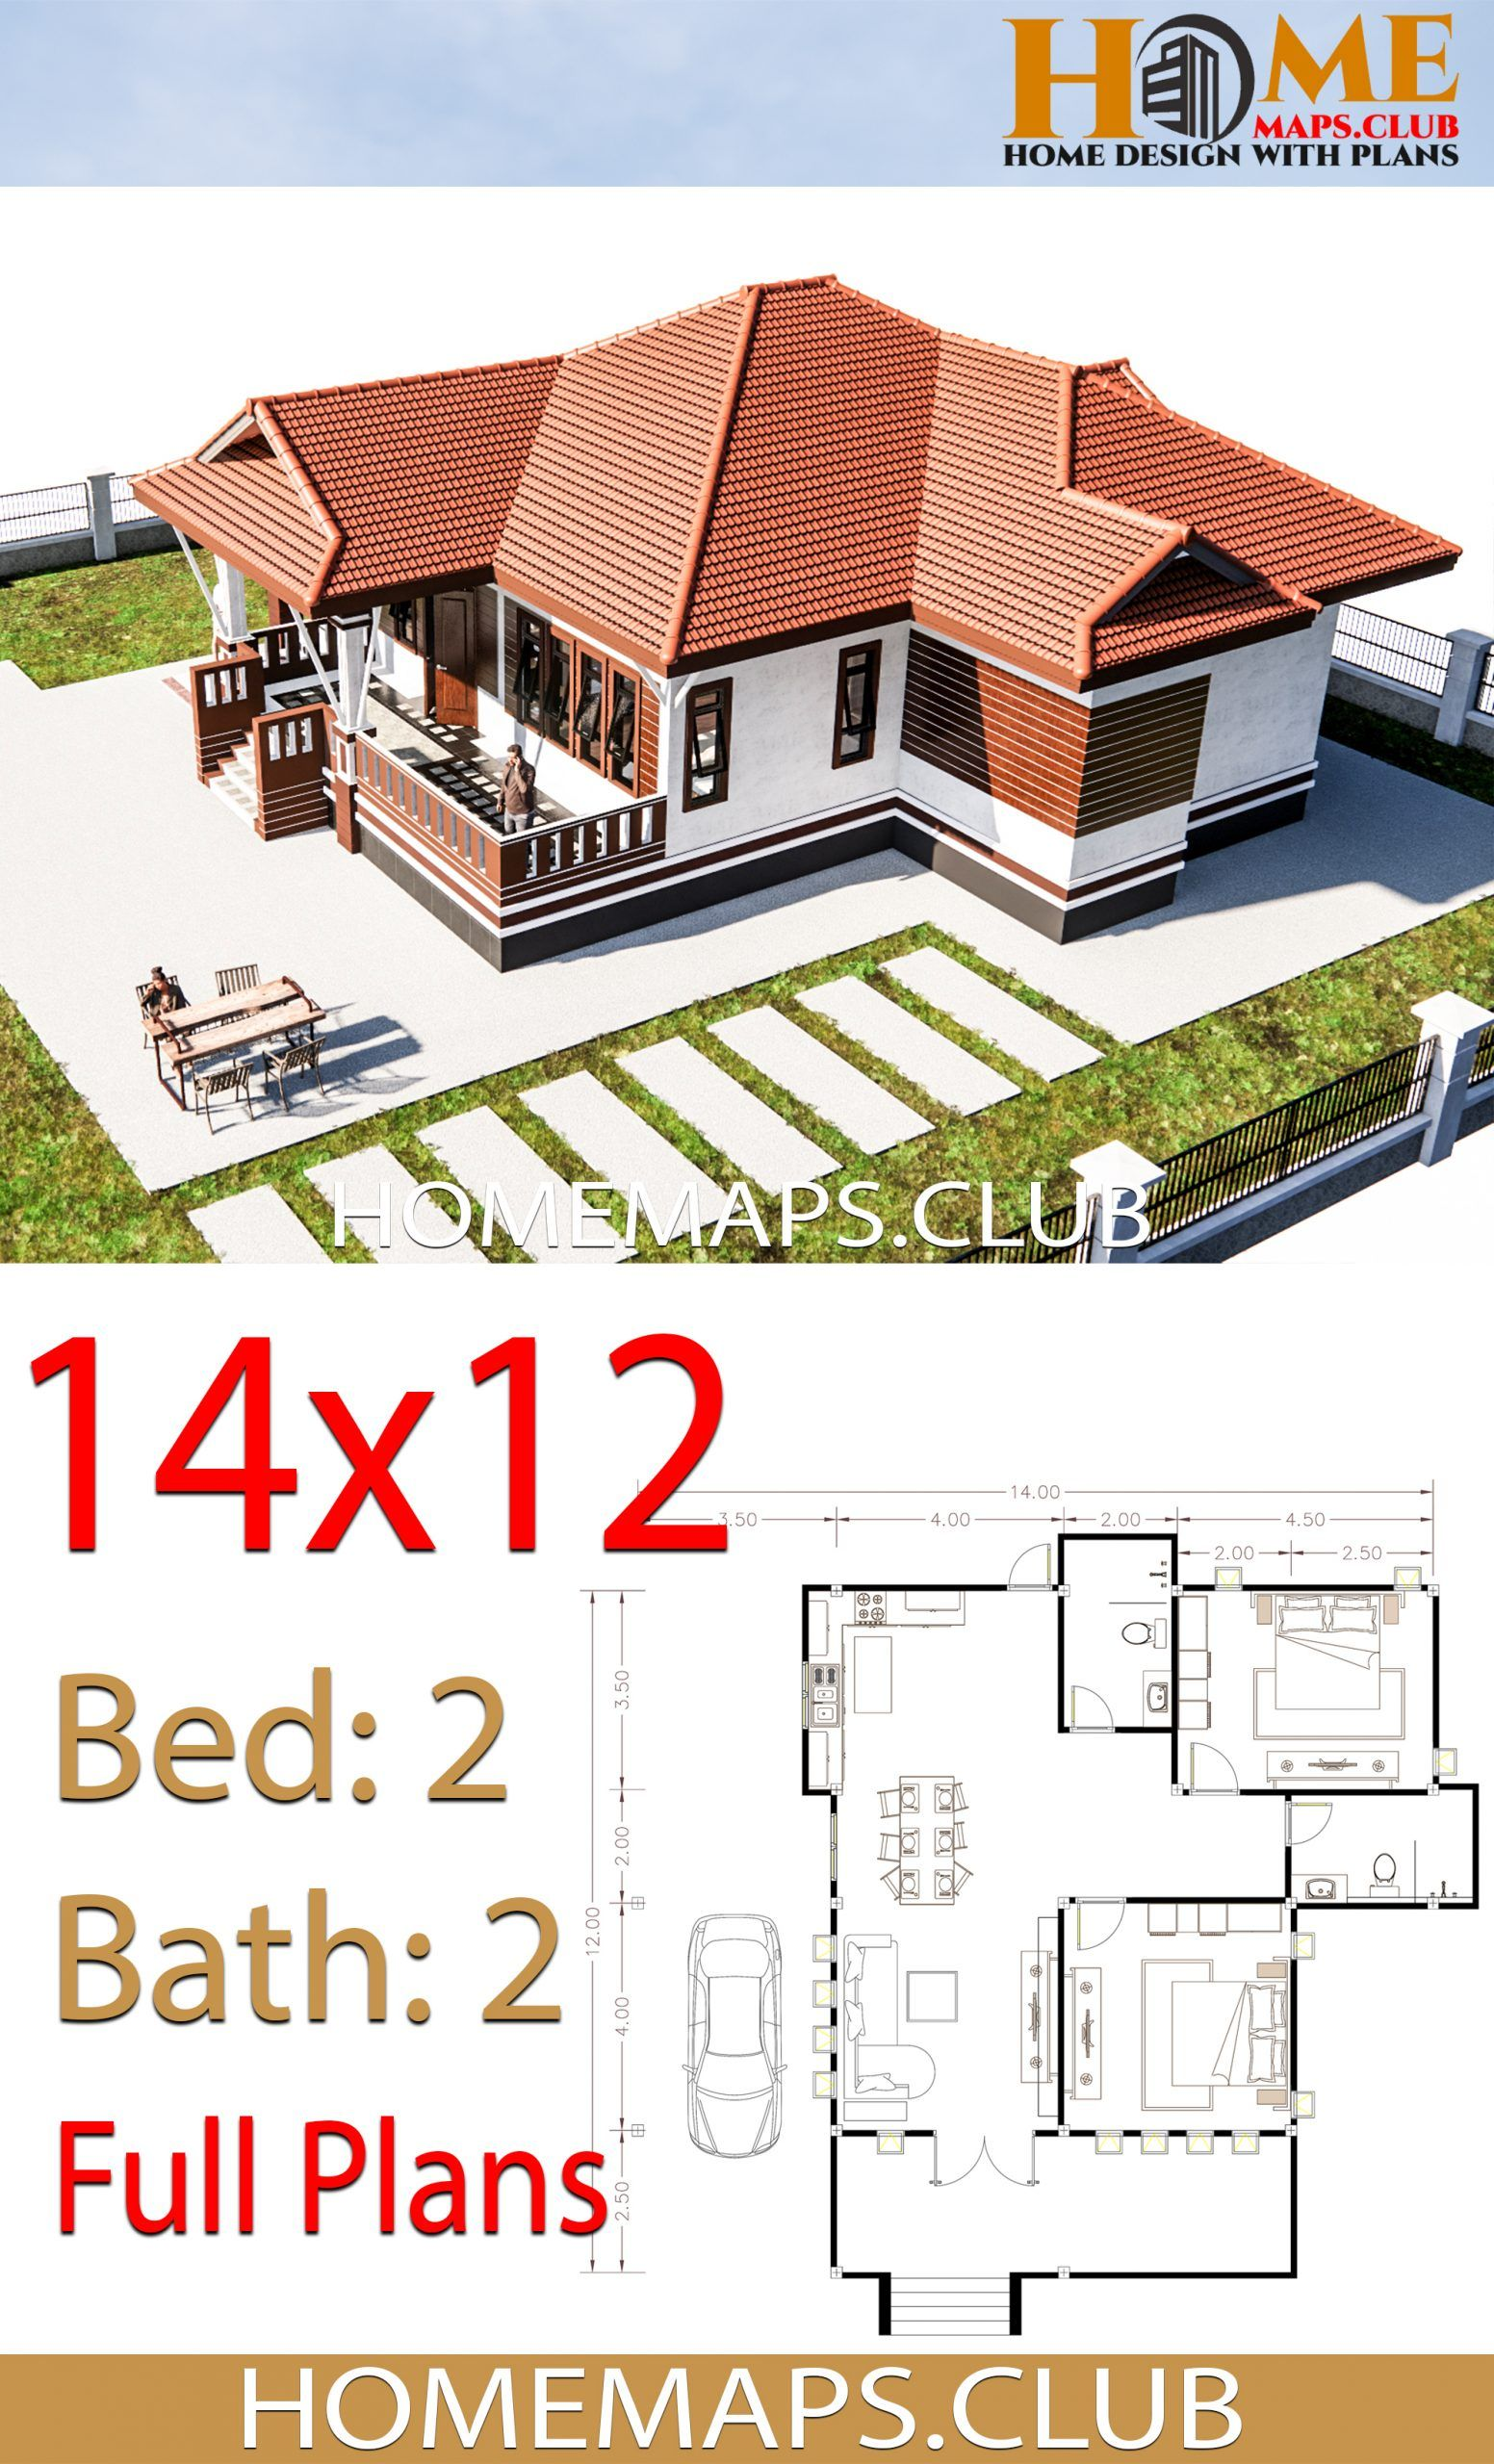 House Plans 14x12 With 2 Bedrooms Hip Roof Hip Roof House Plans House Design